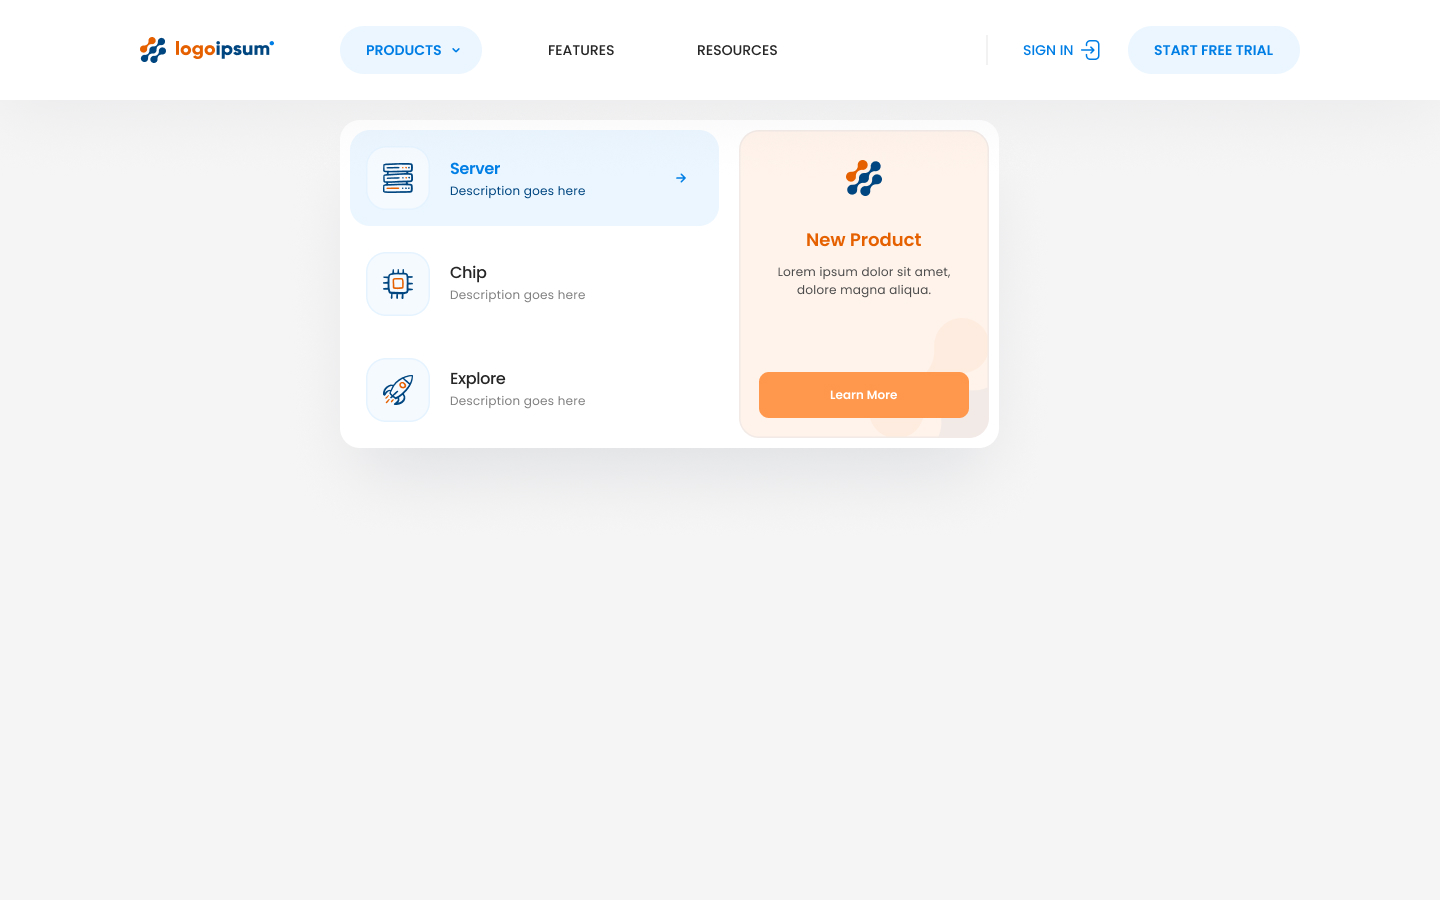 Dropdown navigation, which can be easily edited and customized to suit your unique project needs. All navigations are built to be 100% responsive on all devices.